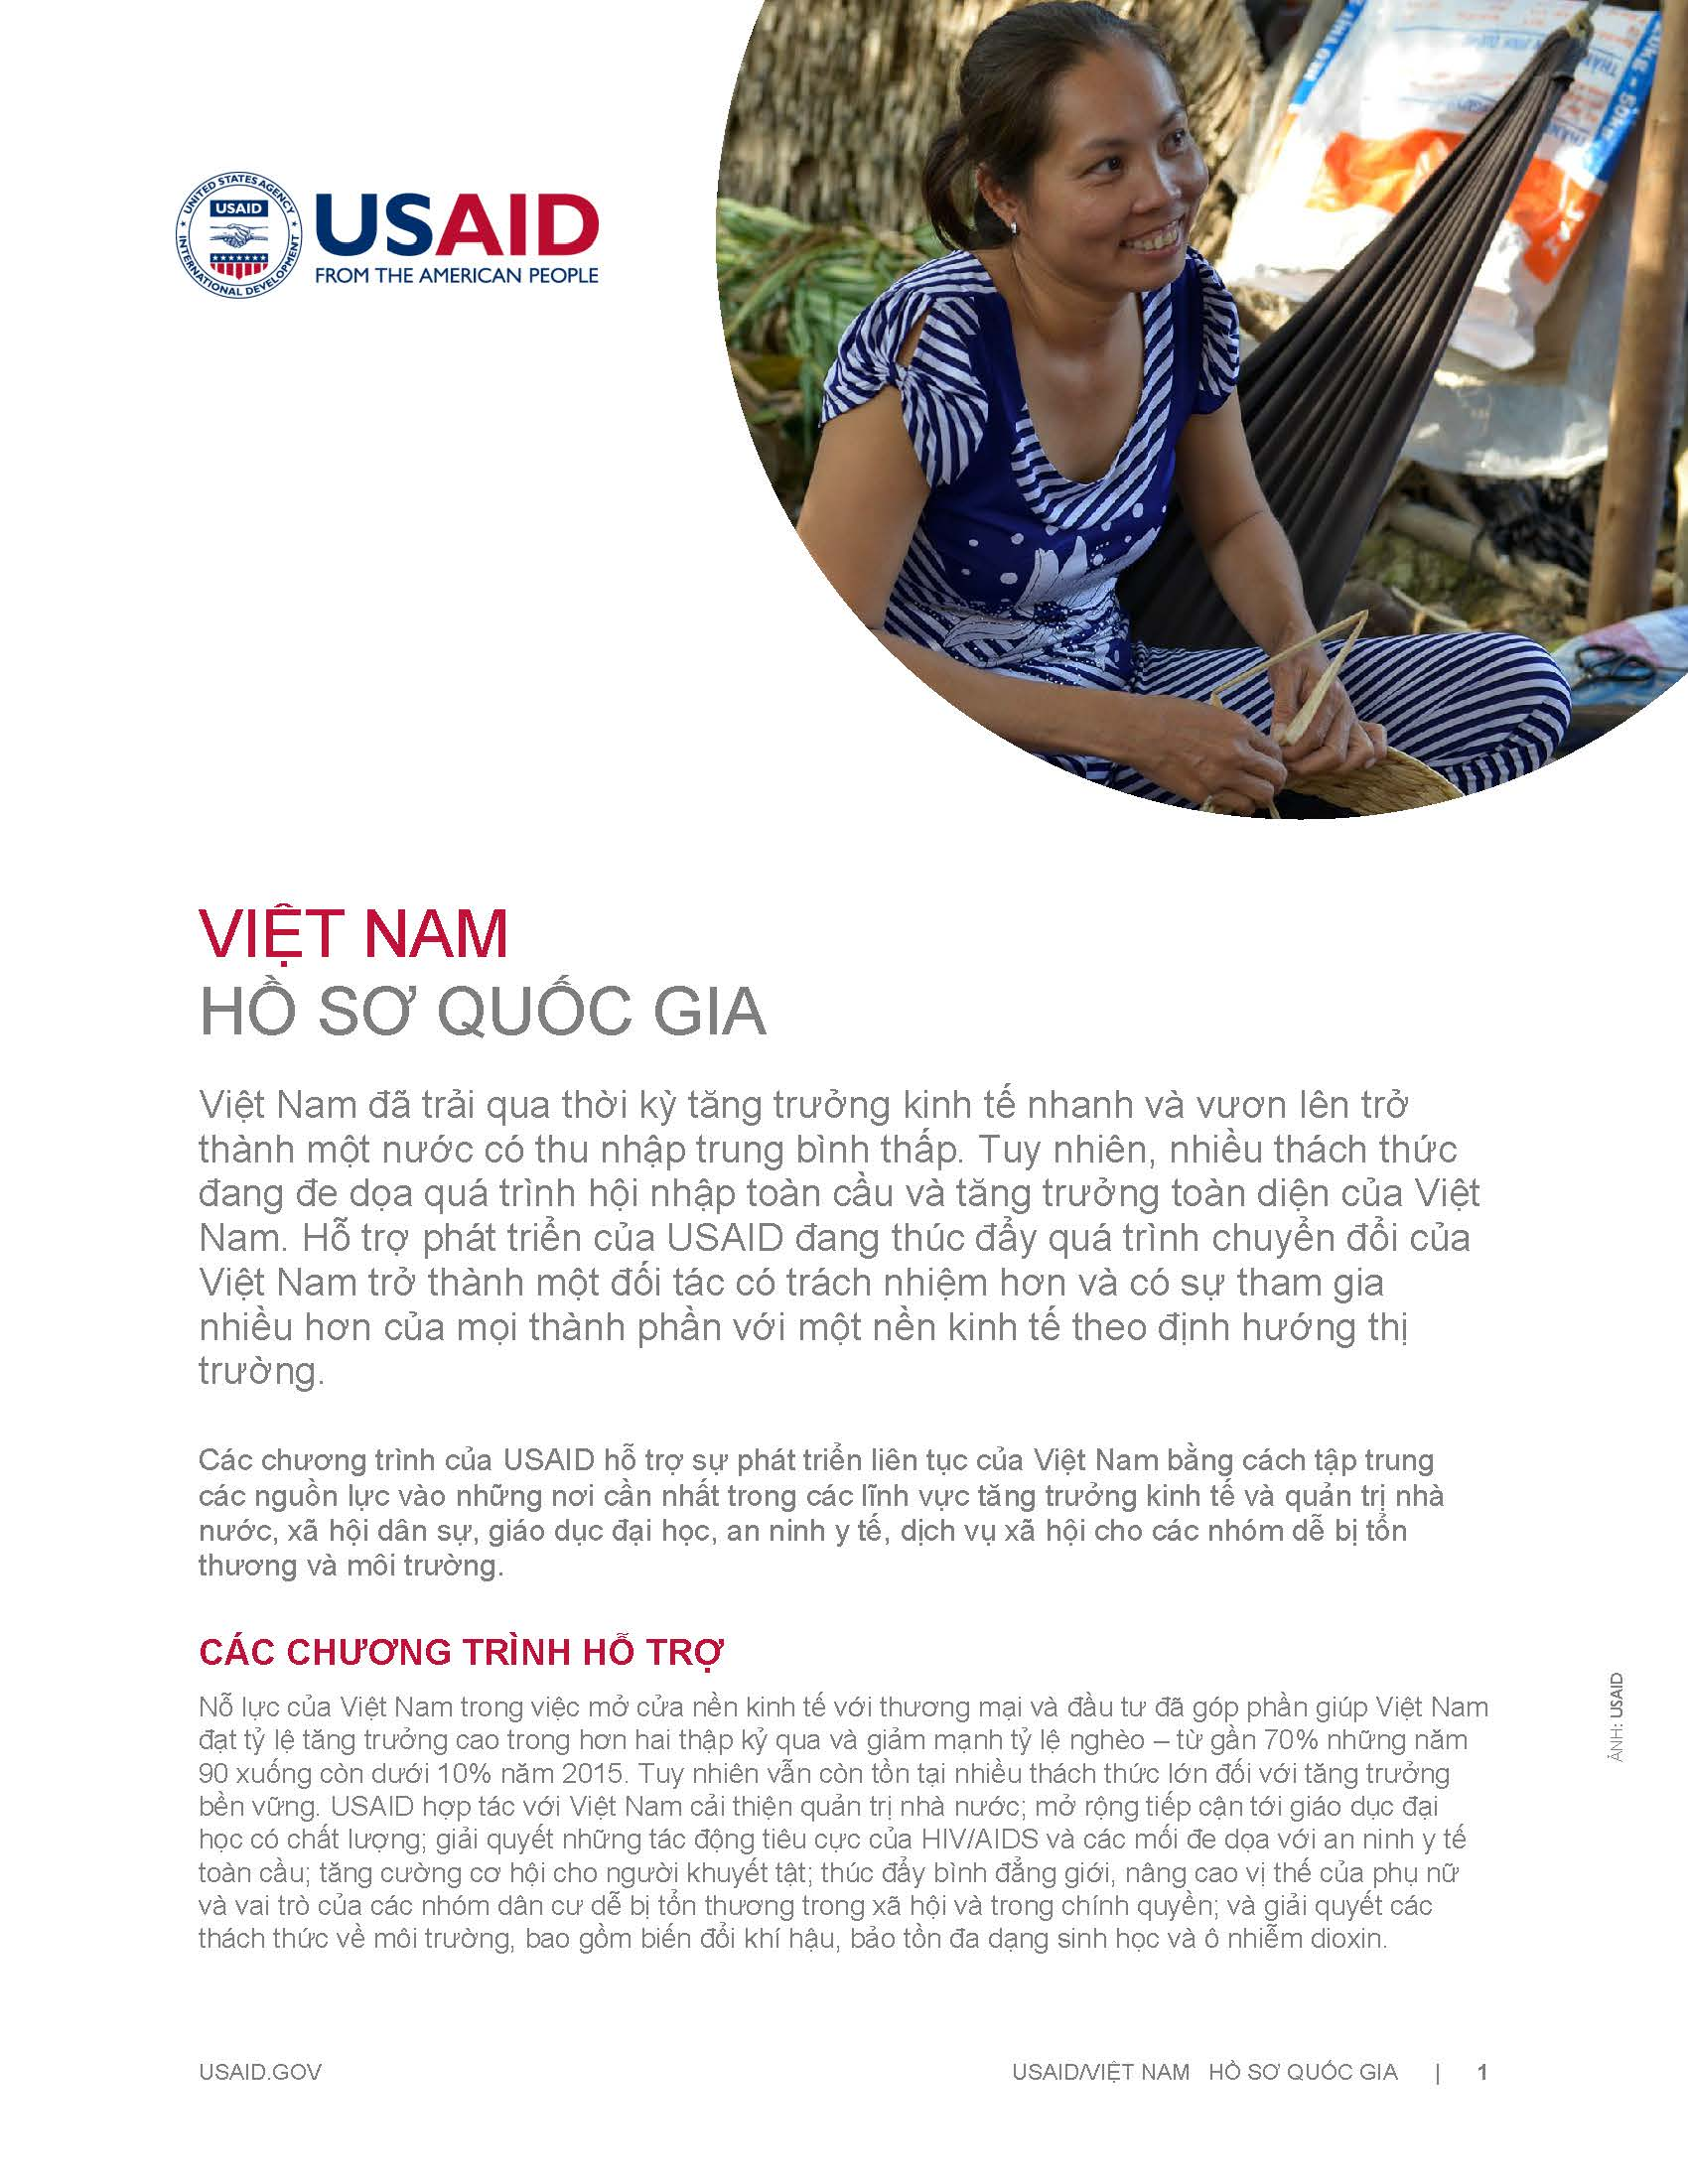 VIETNAM_CountryProfile_CLEARED_Oct2016_Vie